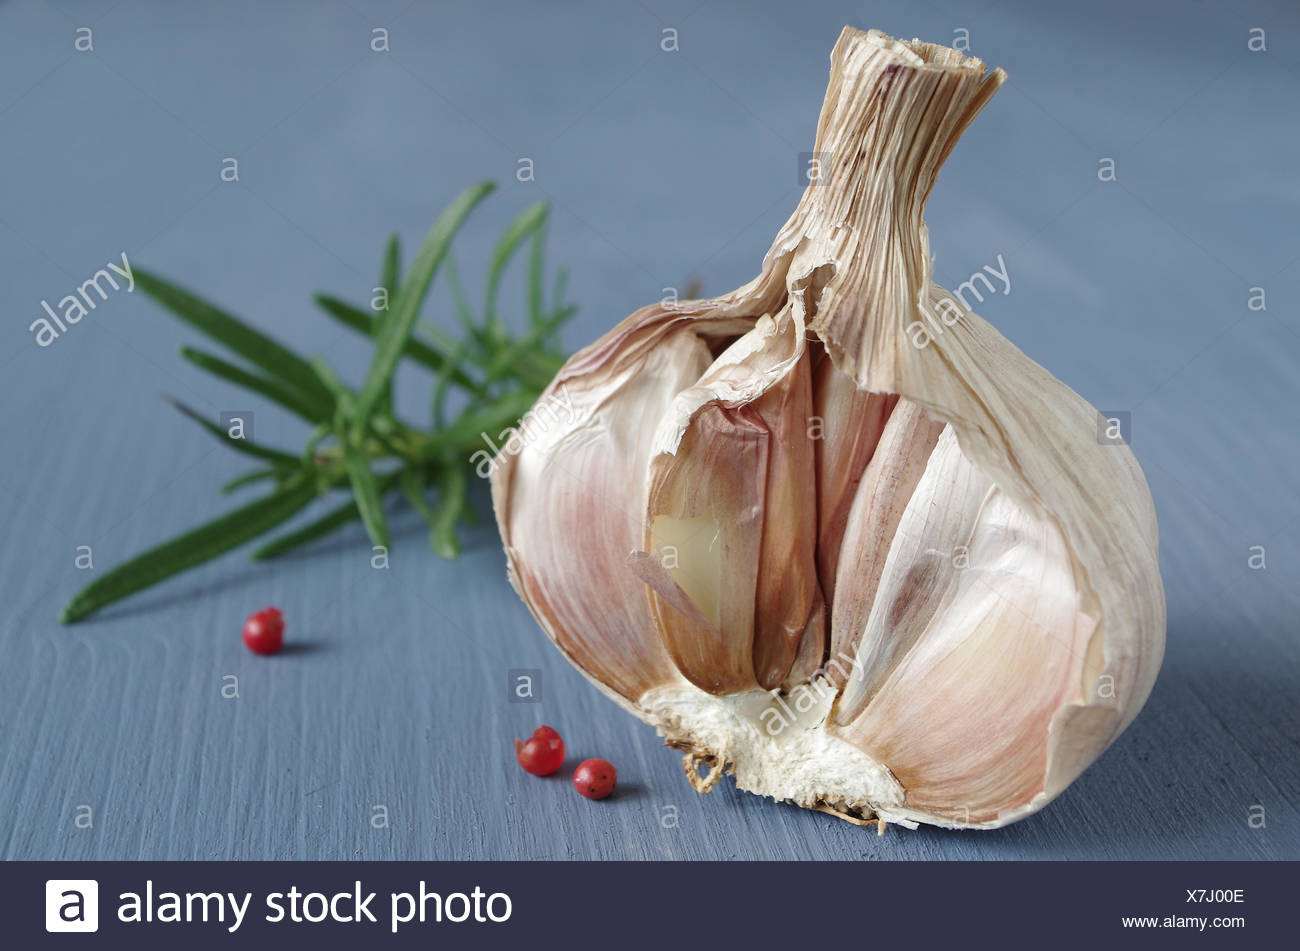 garlic bulb - Stock Image